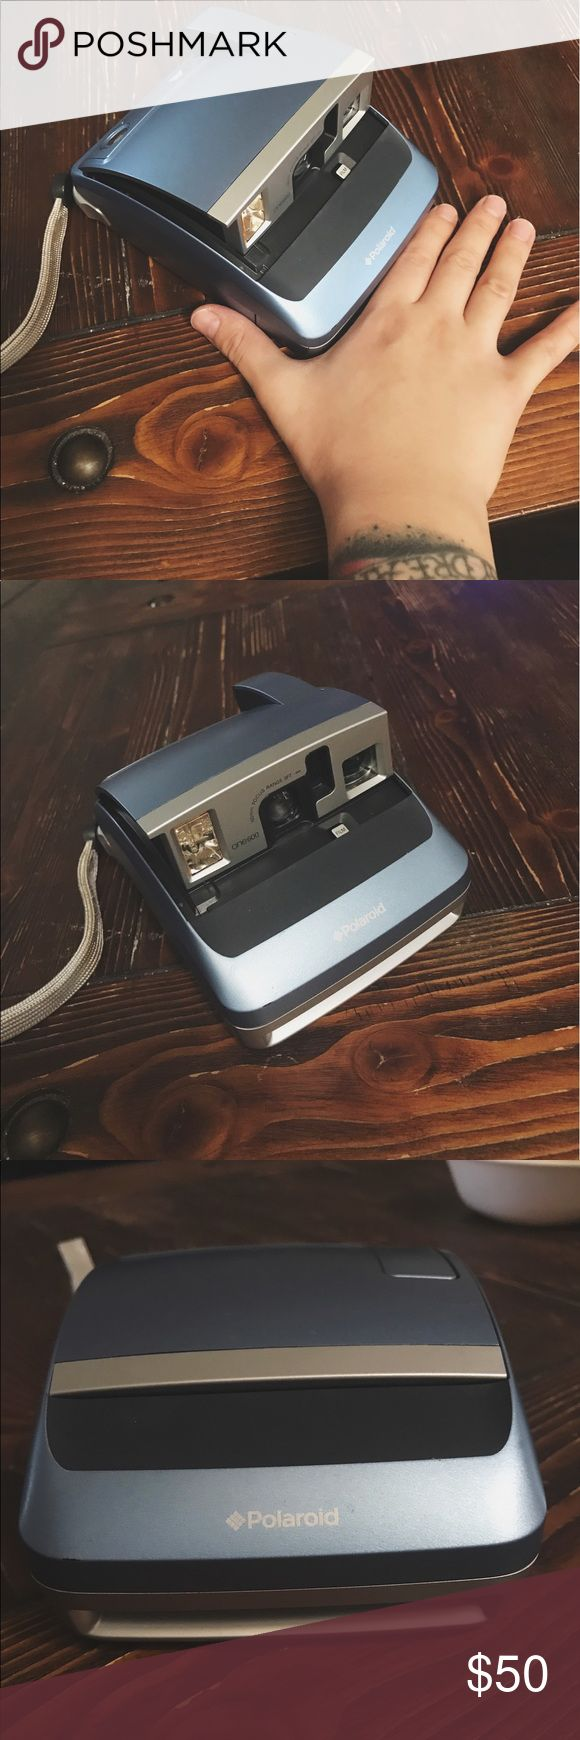 "♥️CLEARANCE 📸✨ Polaroid One 600 Instant Camera EUC Works perfect. Compact size, produced in the 2000's. 📸✨✨✨ Film found at Urban Outfitters website or via google ""impossible film"" Polaroid Other"